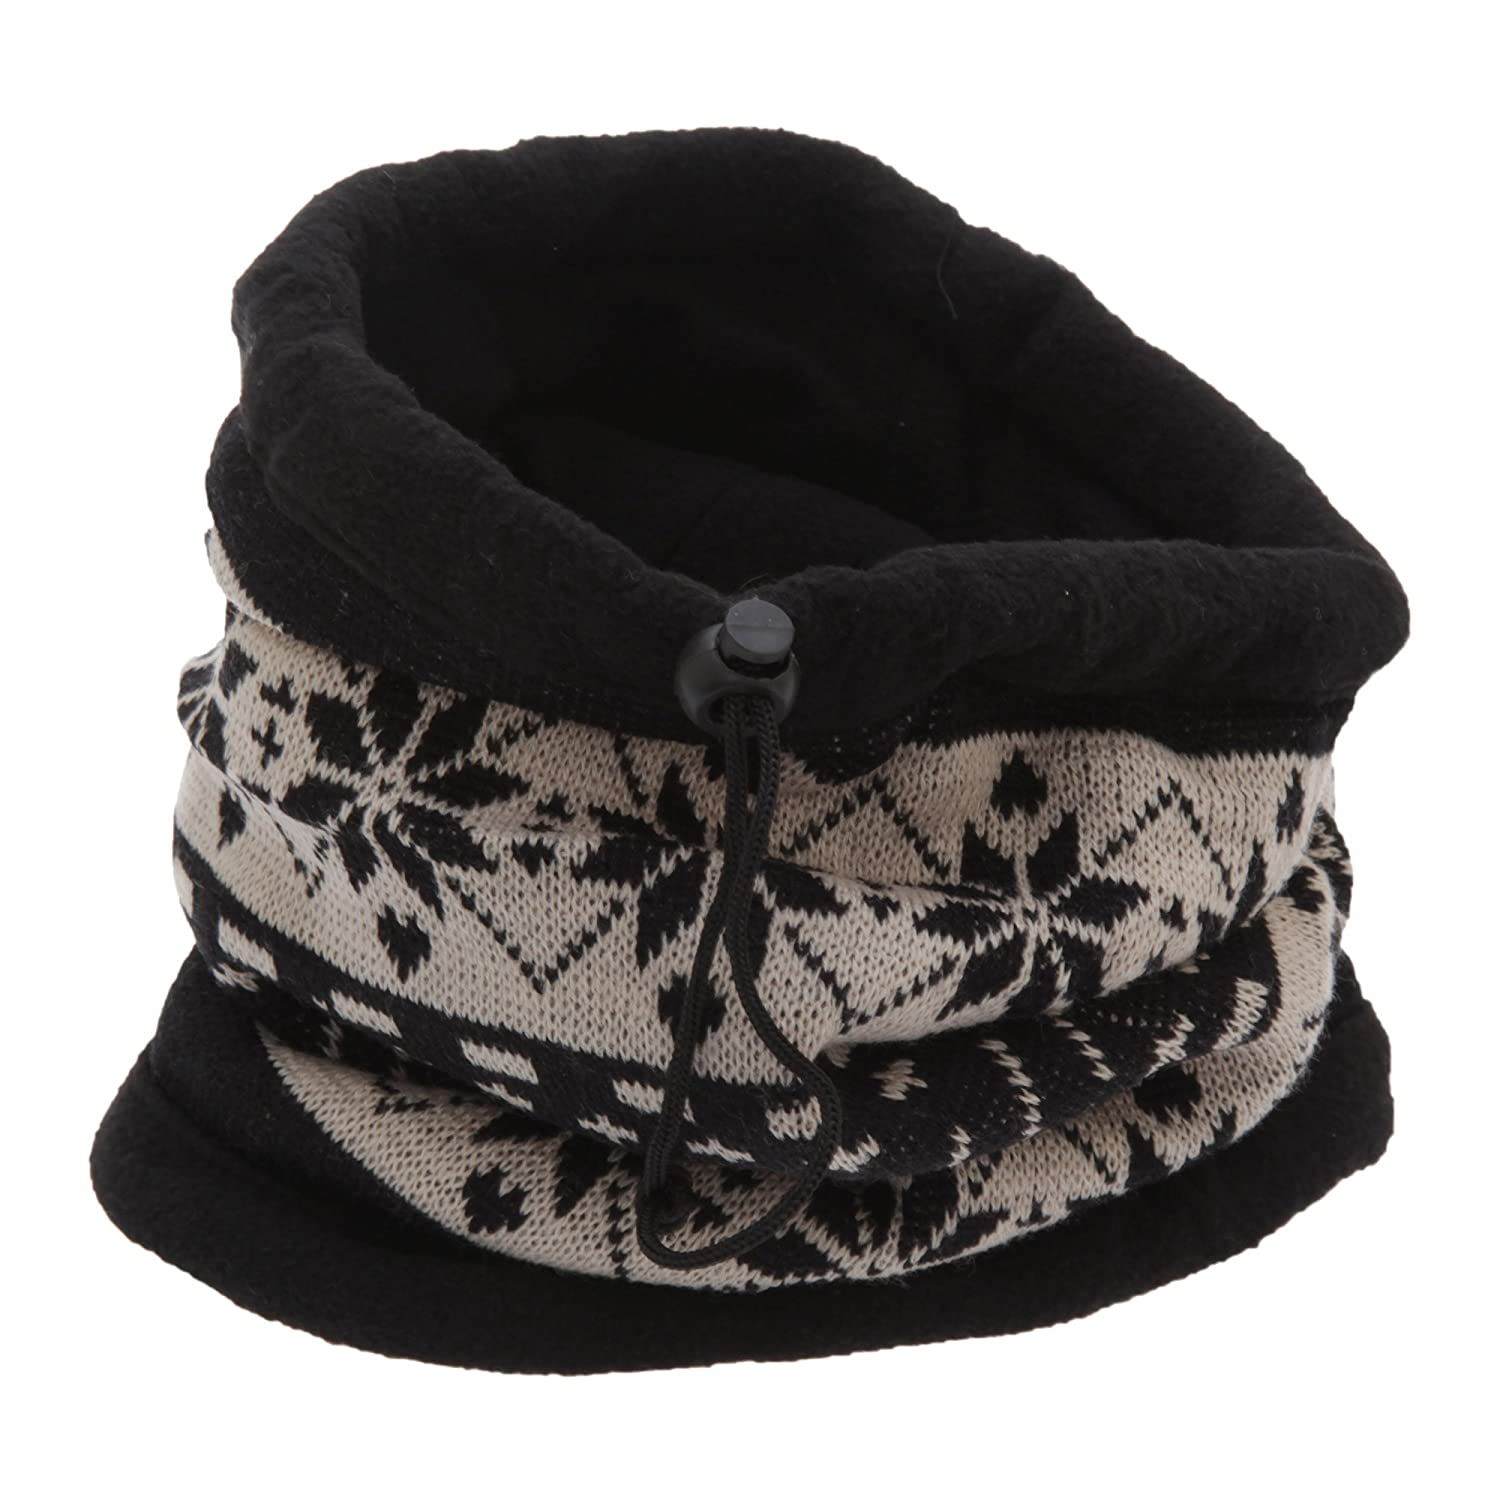 Unisex Patterned Snowflake Design Multifunctional Winter Hat/Snood/Mask Universal Textiles UTHA242_2